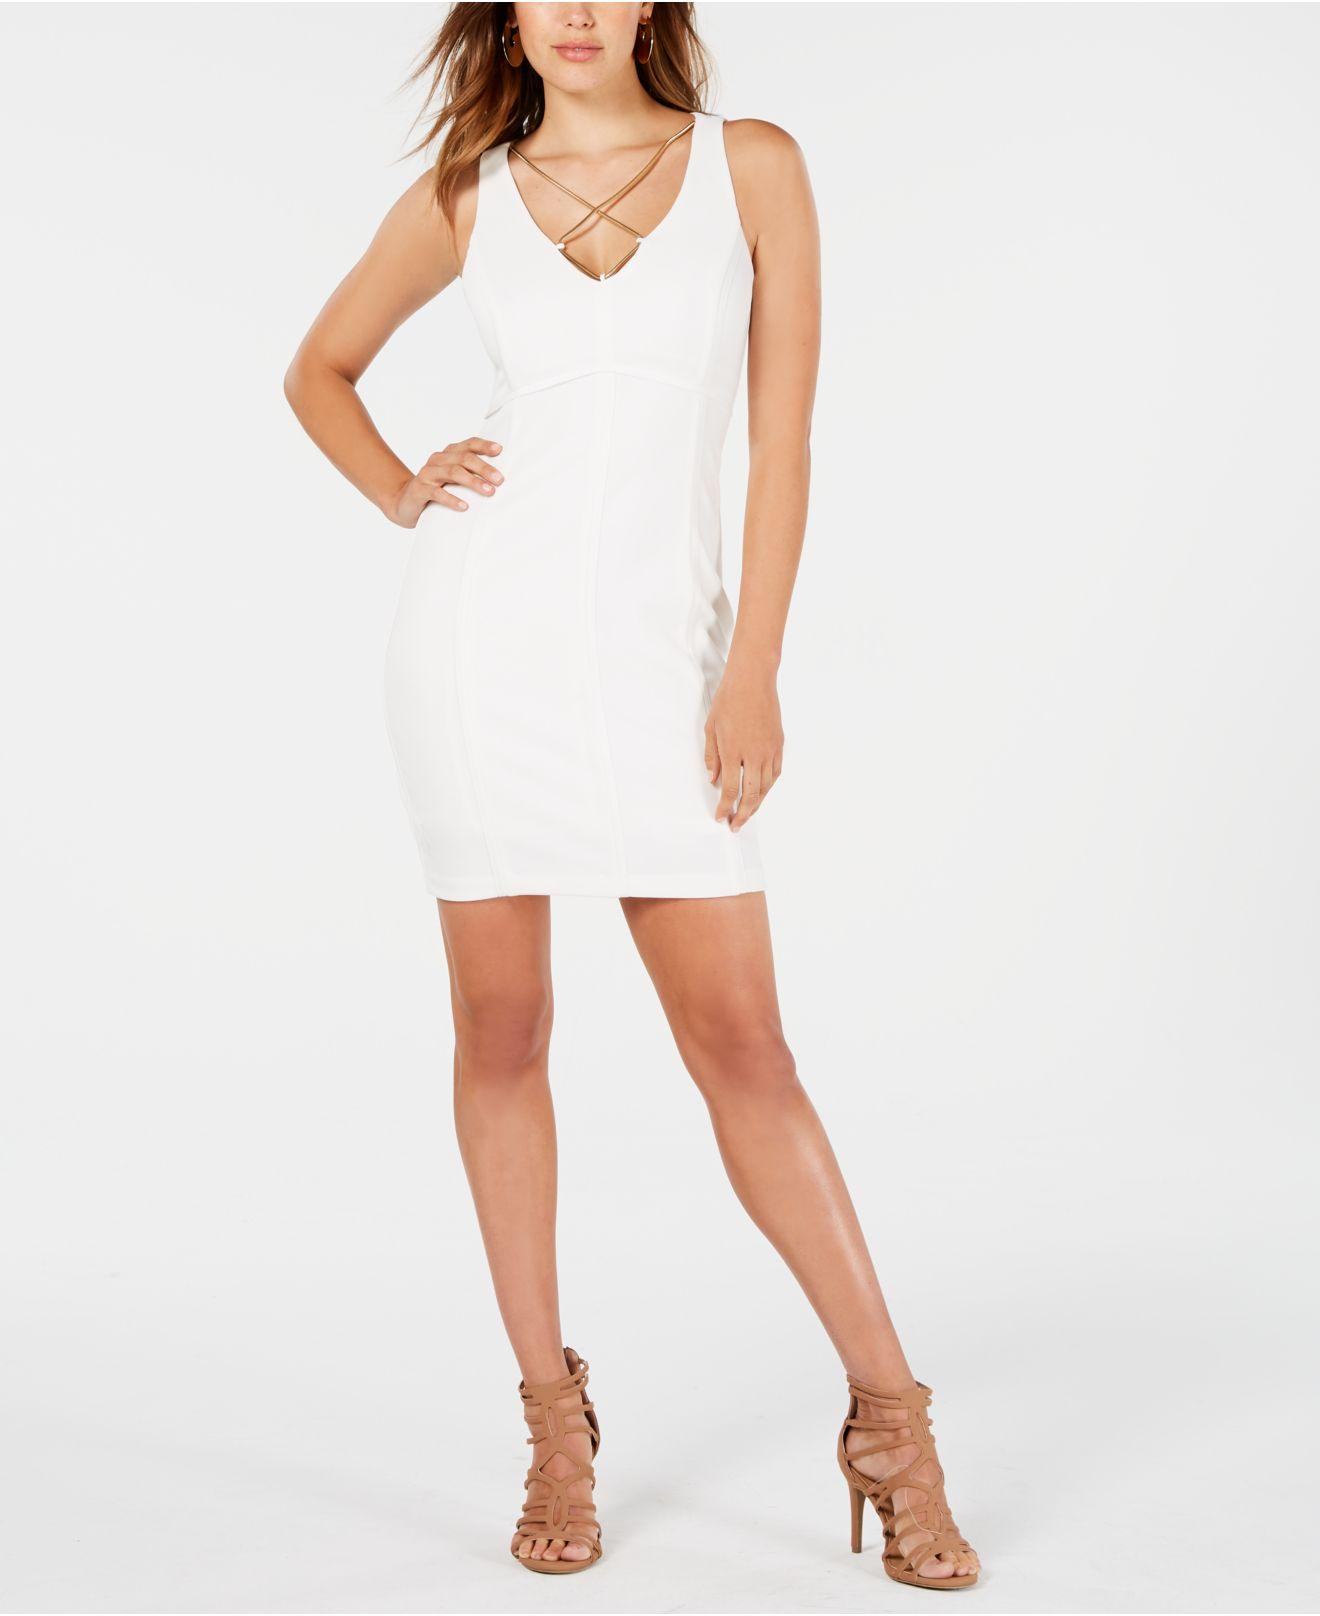 457b6192 Lyst - Guess Crisscross-chain Bodycon Dress in White